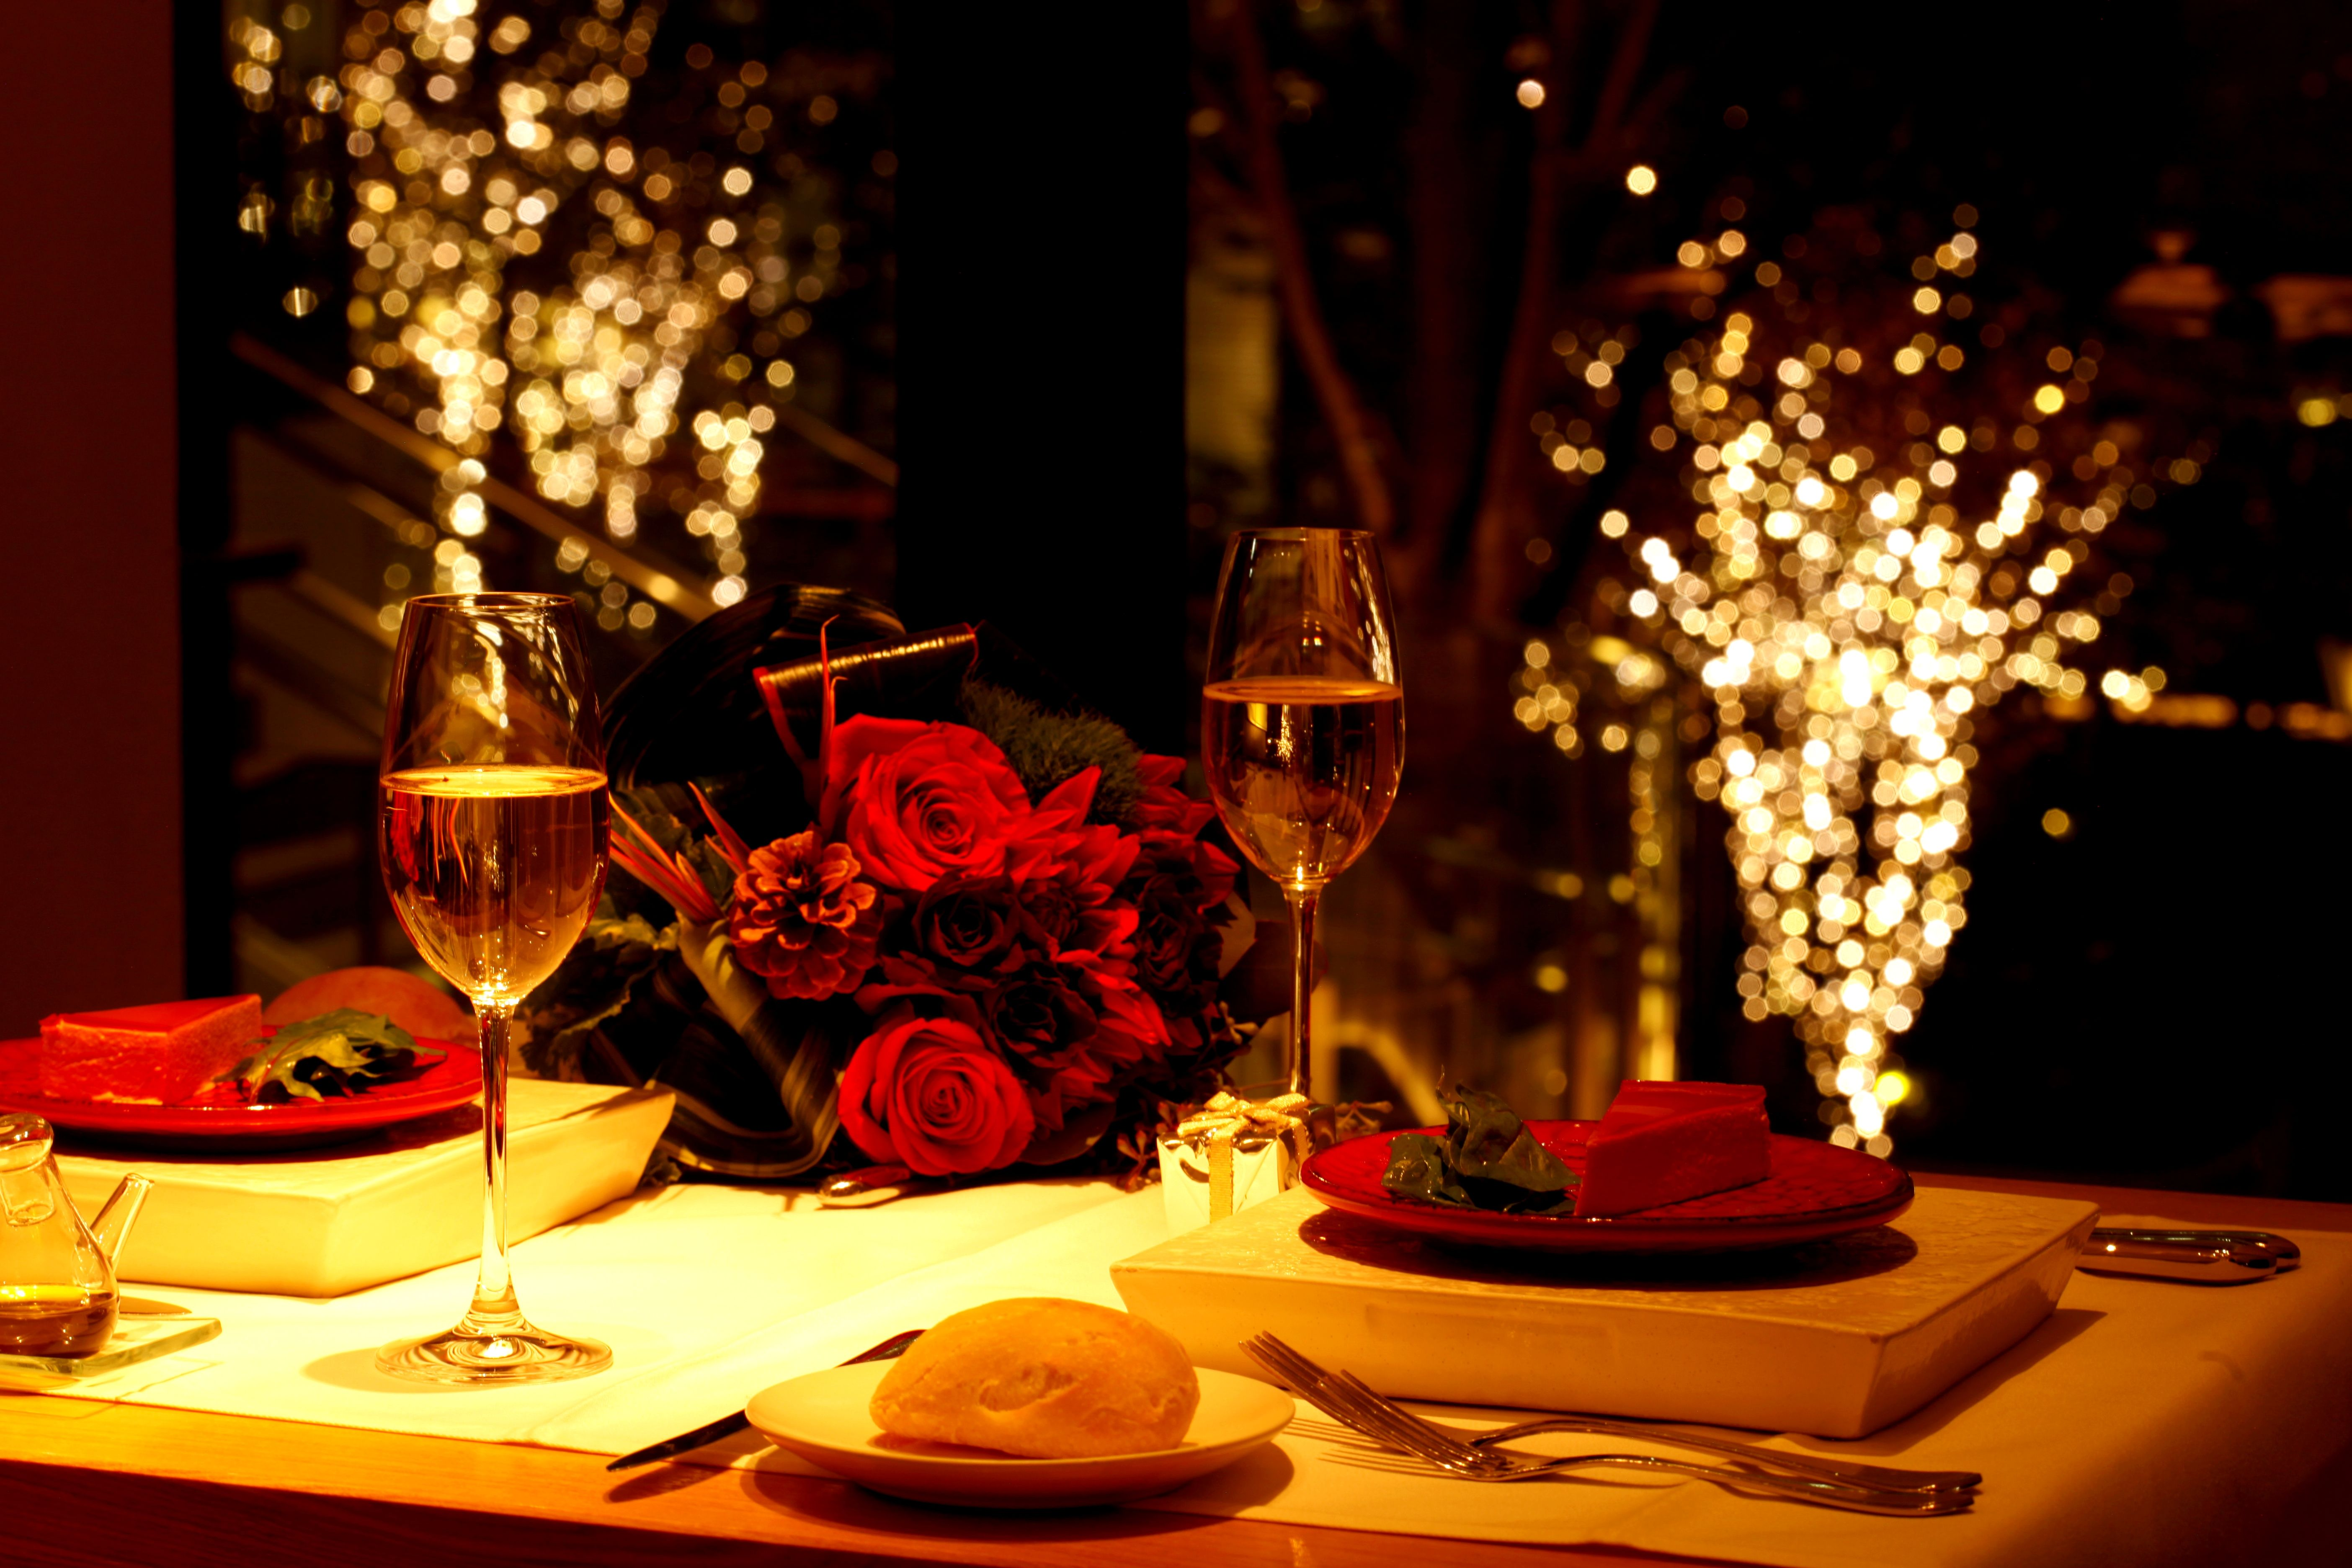 Romantic dinner table decoration - Going Out On A Romantic Dinner Pandoravalentinescontest